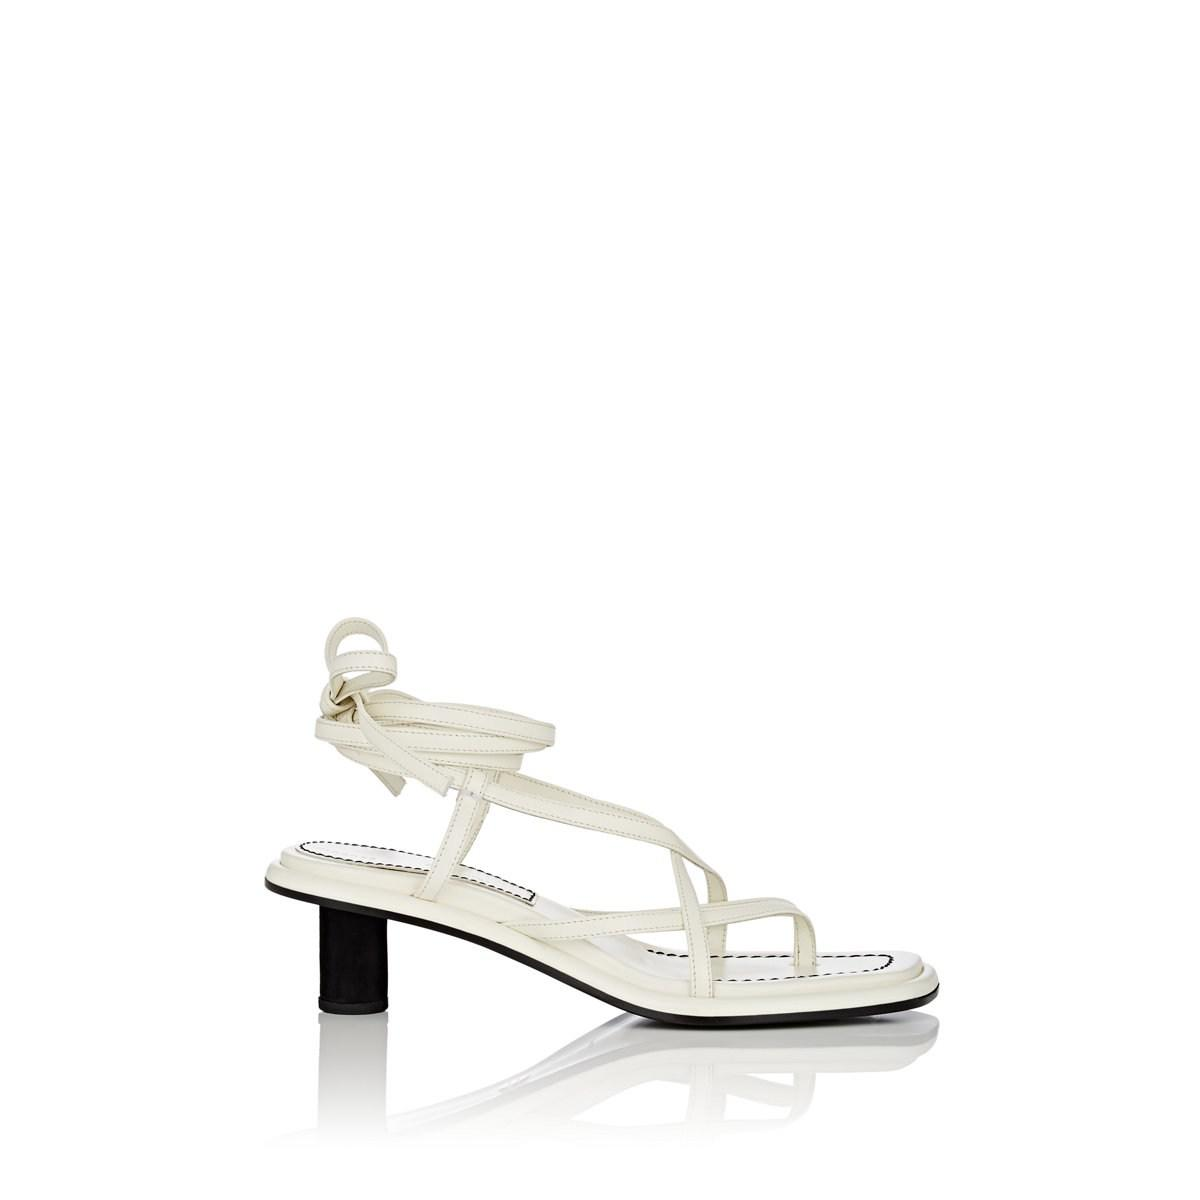 a330186c6d3 Proenza Schouler - White Leather Ankle-tie Sandals - Lyst. View fullscreen